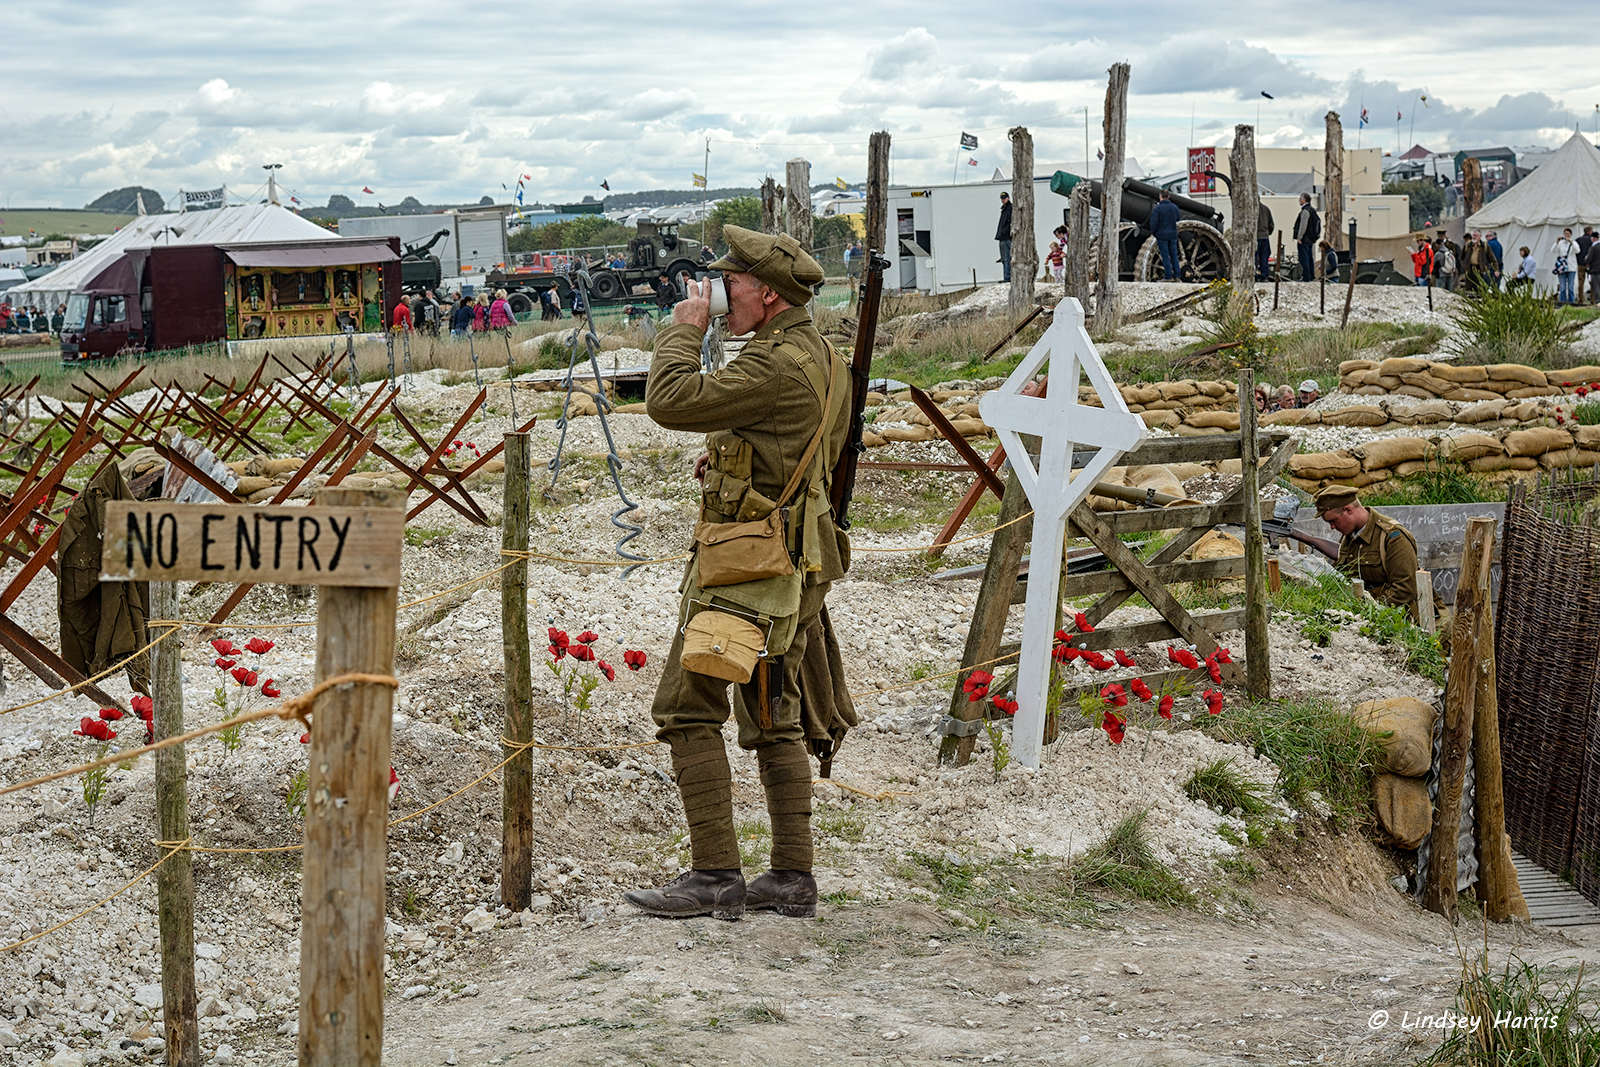 WWI Exhibition at The Great Dorset Steam Fair 2015